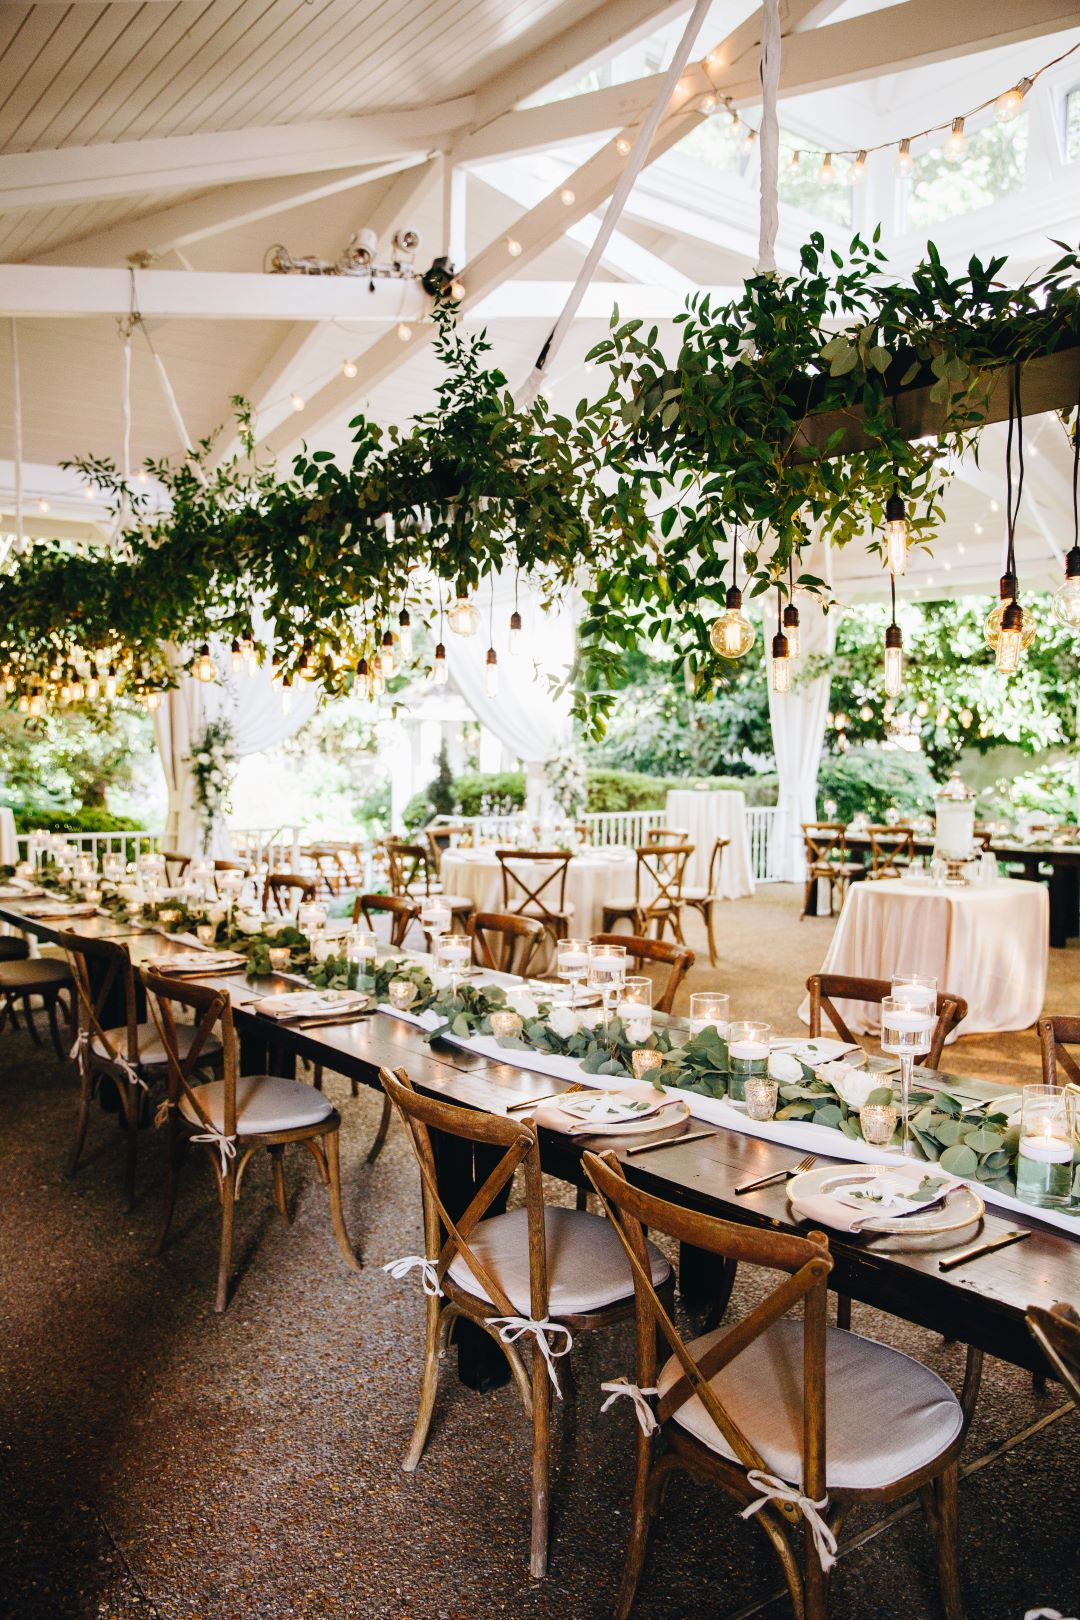 Long farmhouse table with greenery chandelier at earthy summer garden wedding in September, neutrals & greenery